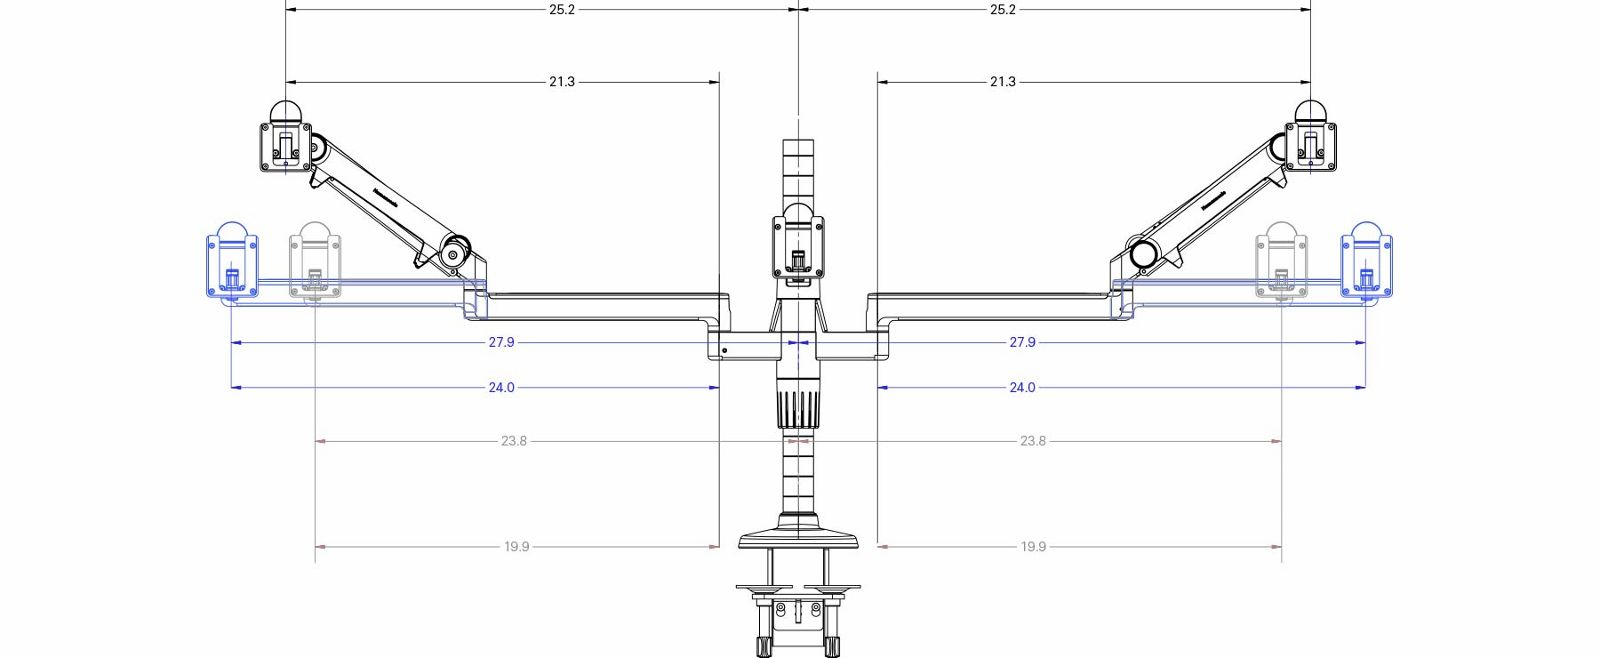 M Flex Humanscales Multi Monitor Arm Support System Wiring Diagram Grommet Key Tech Specs